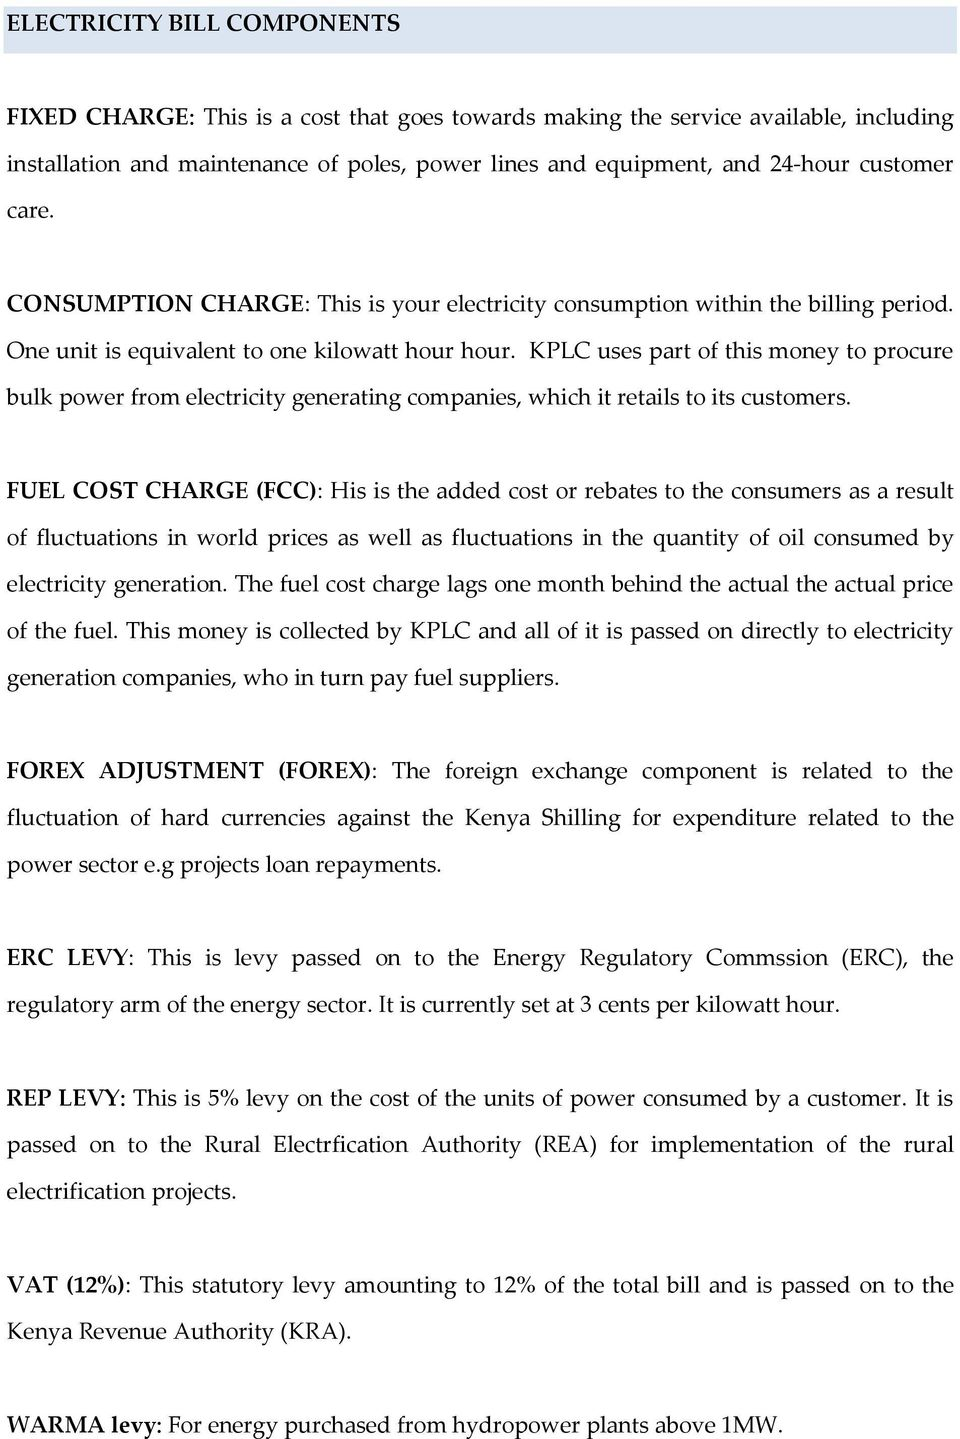 KPLC uses part of this money to procure bulk power from electricity generating companies, which it retails to its customers.